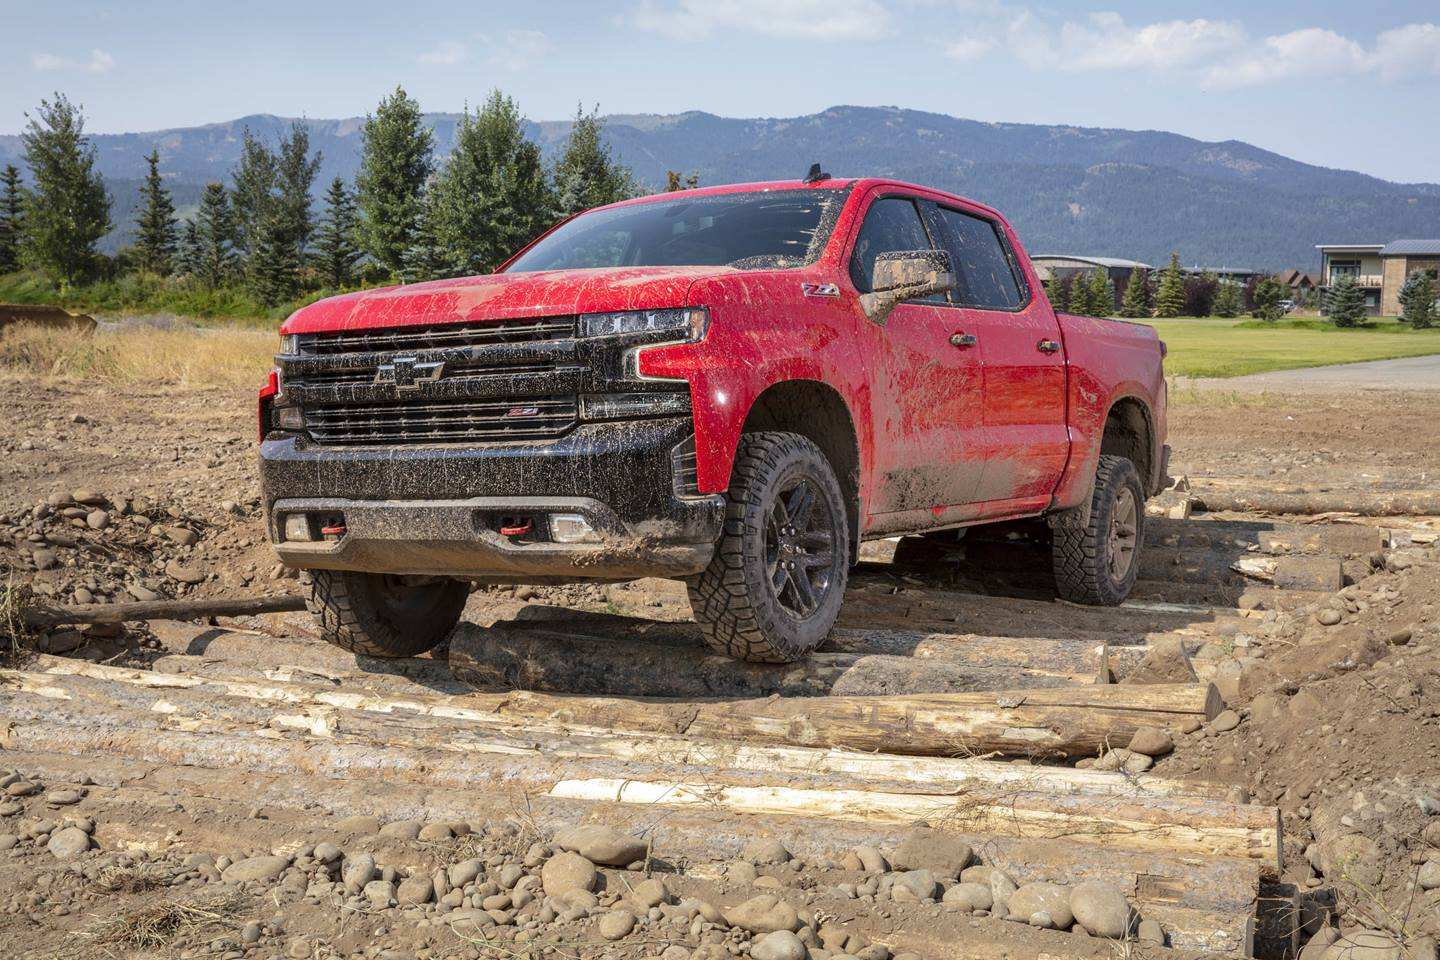 47 Concept of New 2019 Chevrolet Silverado Aluminum First Drive Redesign and Concept for New 2019 Chevrolet Silverado Aluminum First Drive